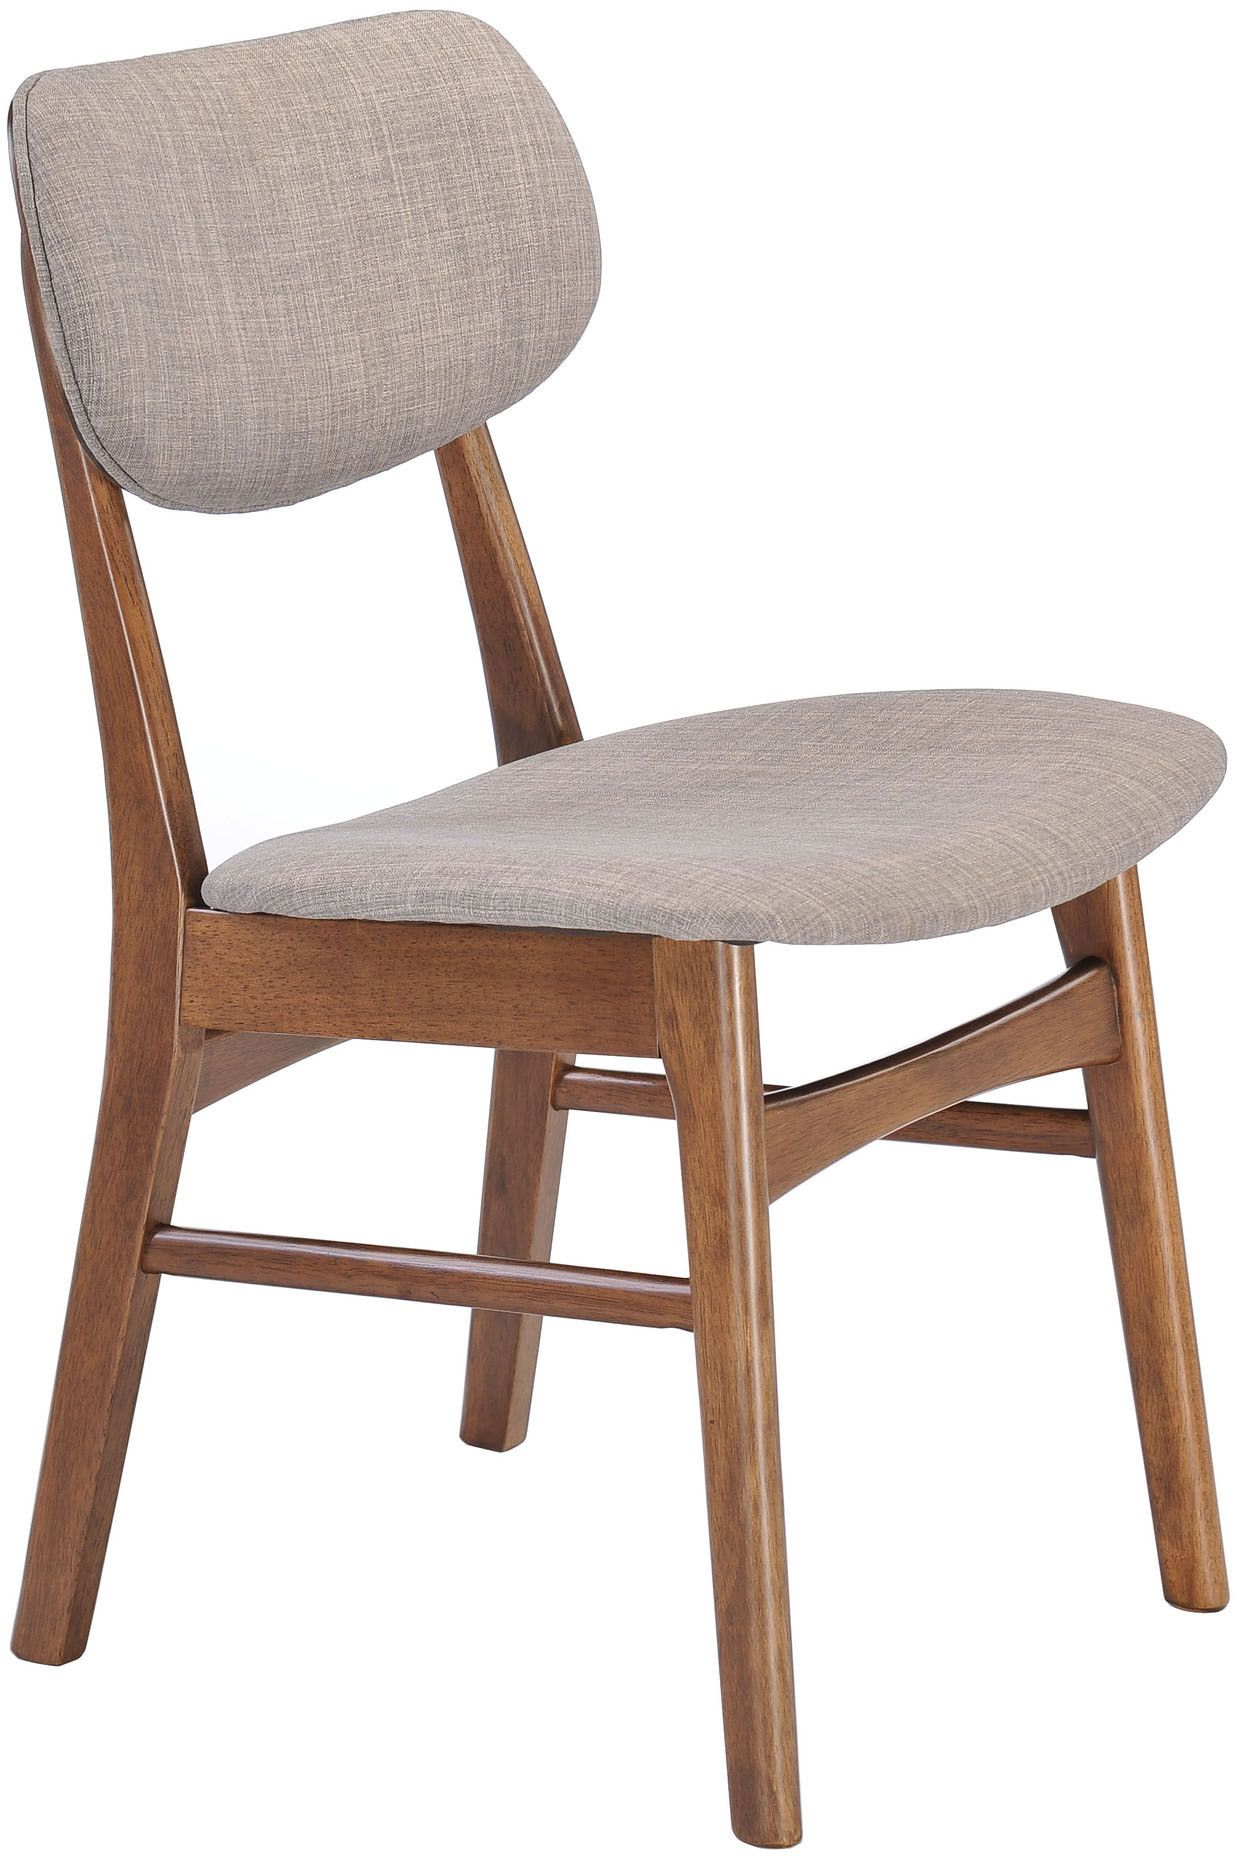 Midland Chair Dove Gray (Set of 2) from FROY